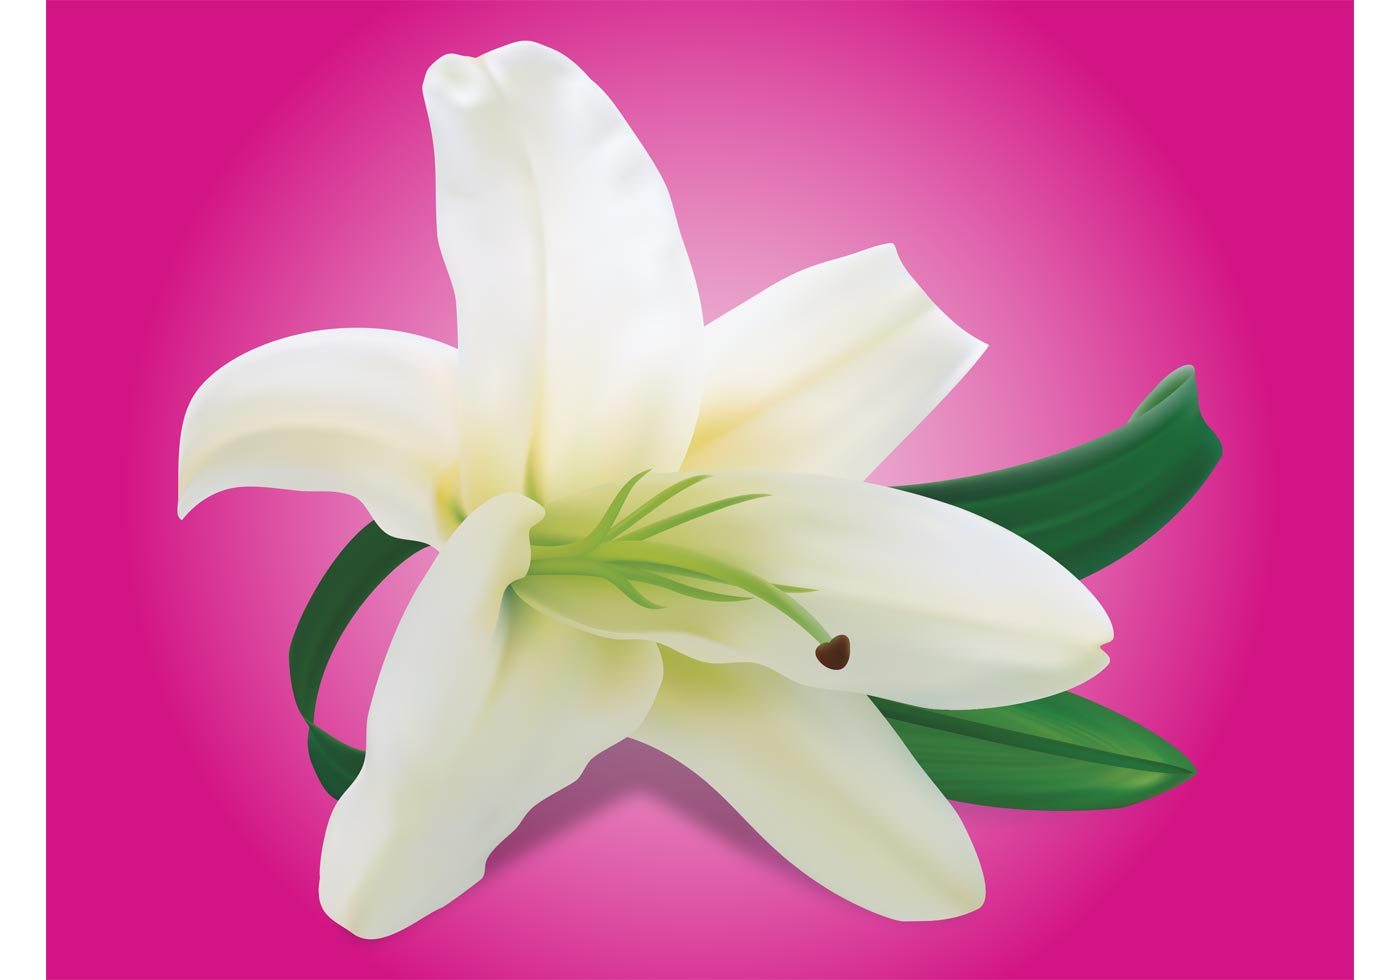 Lily flower download free vector art stock graphics images izmirmasajfo